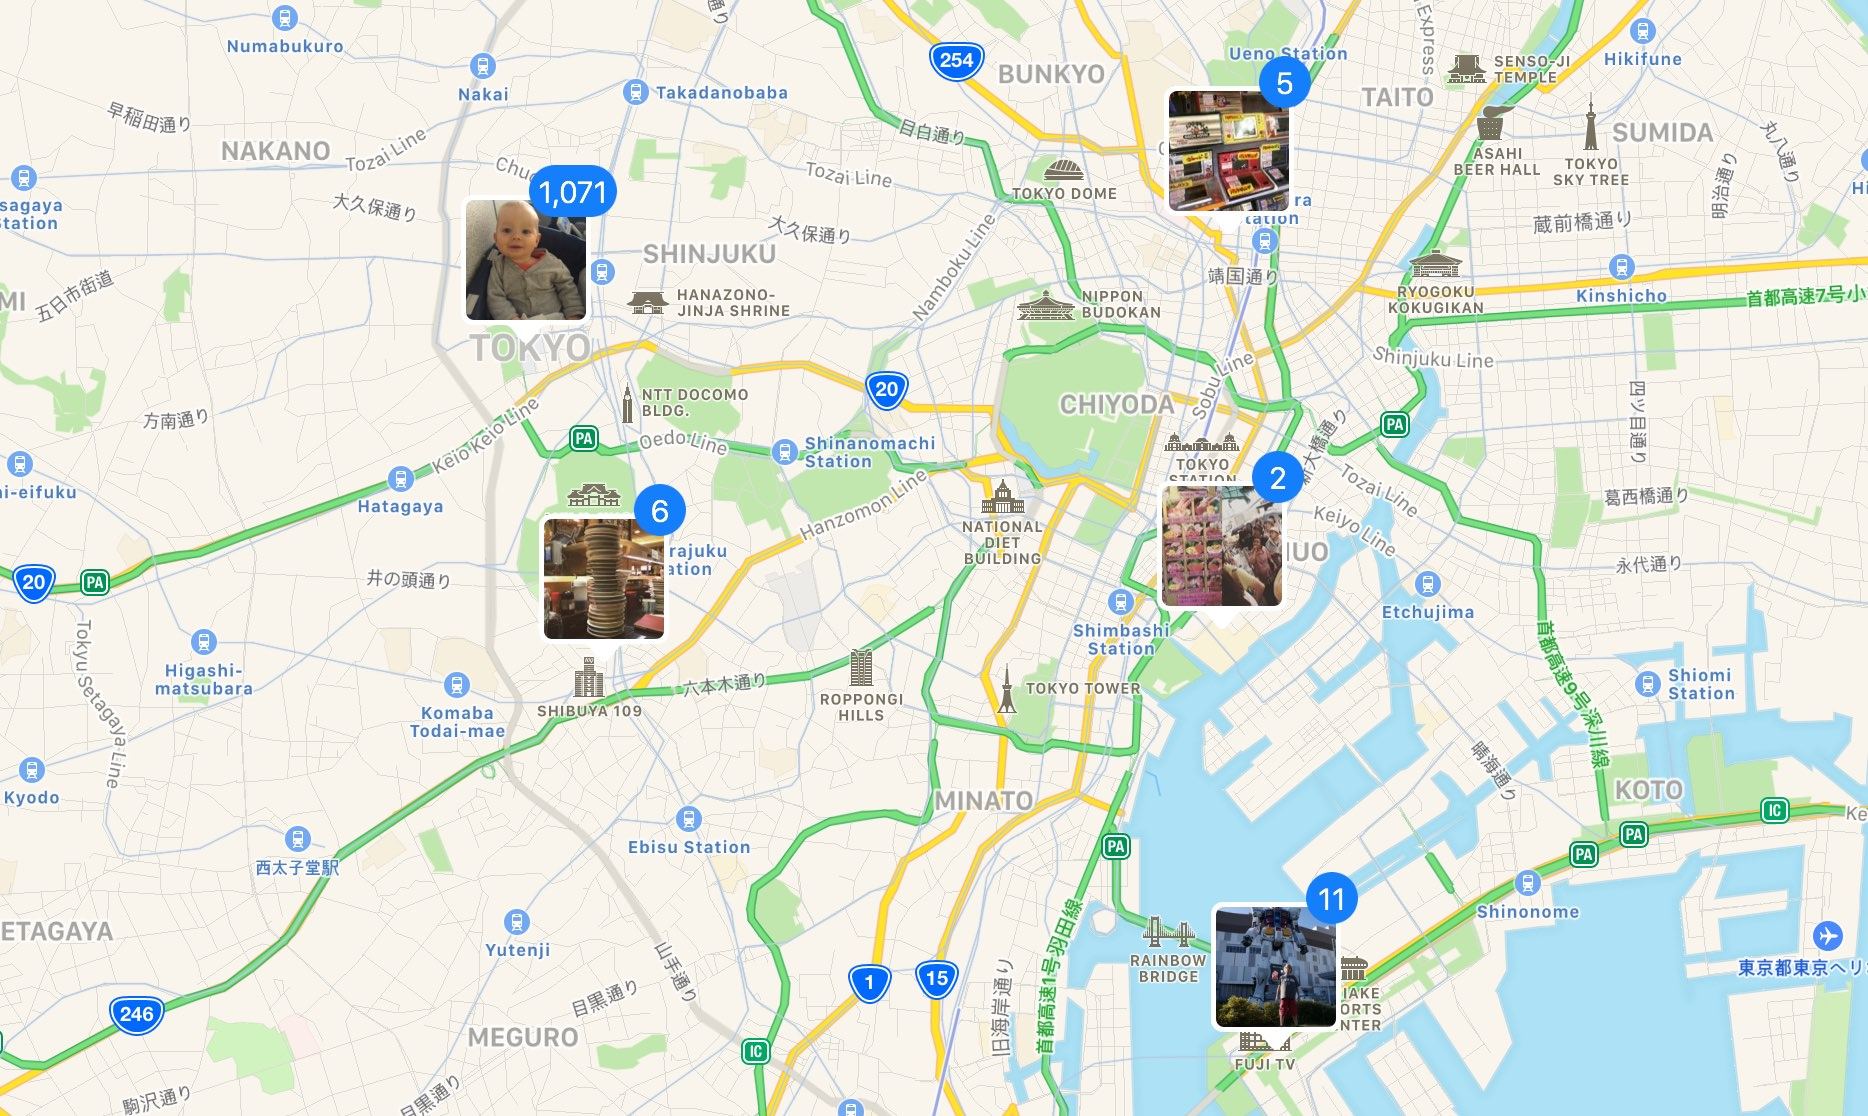 Photos on the Places map of Tokyo